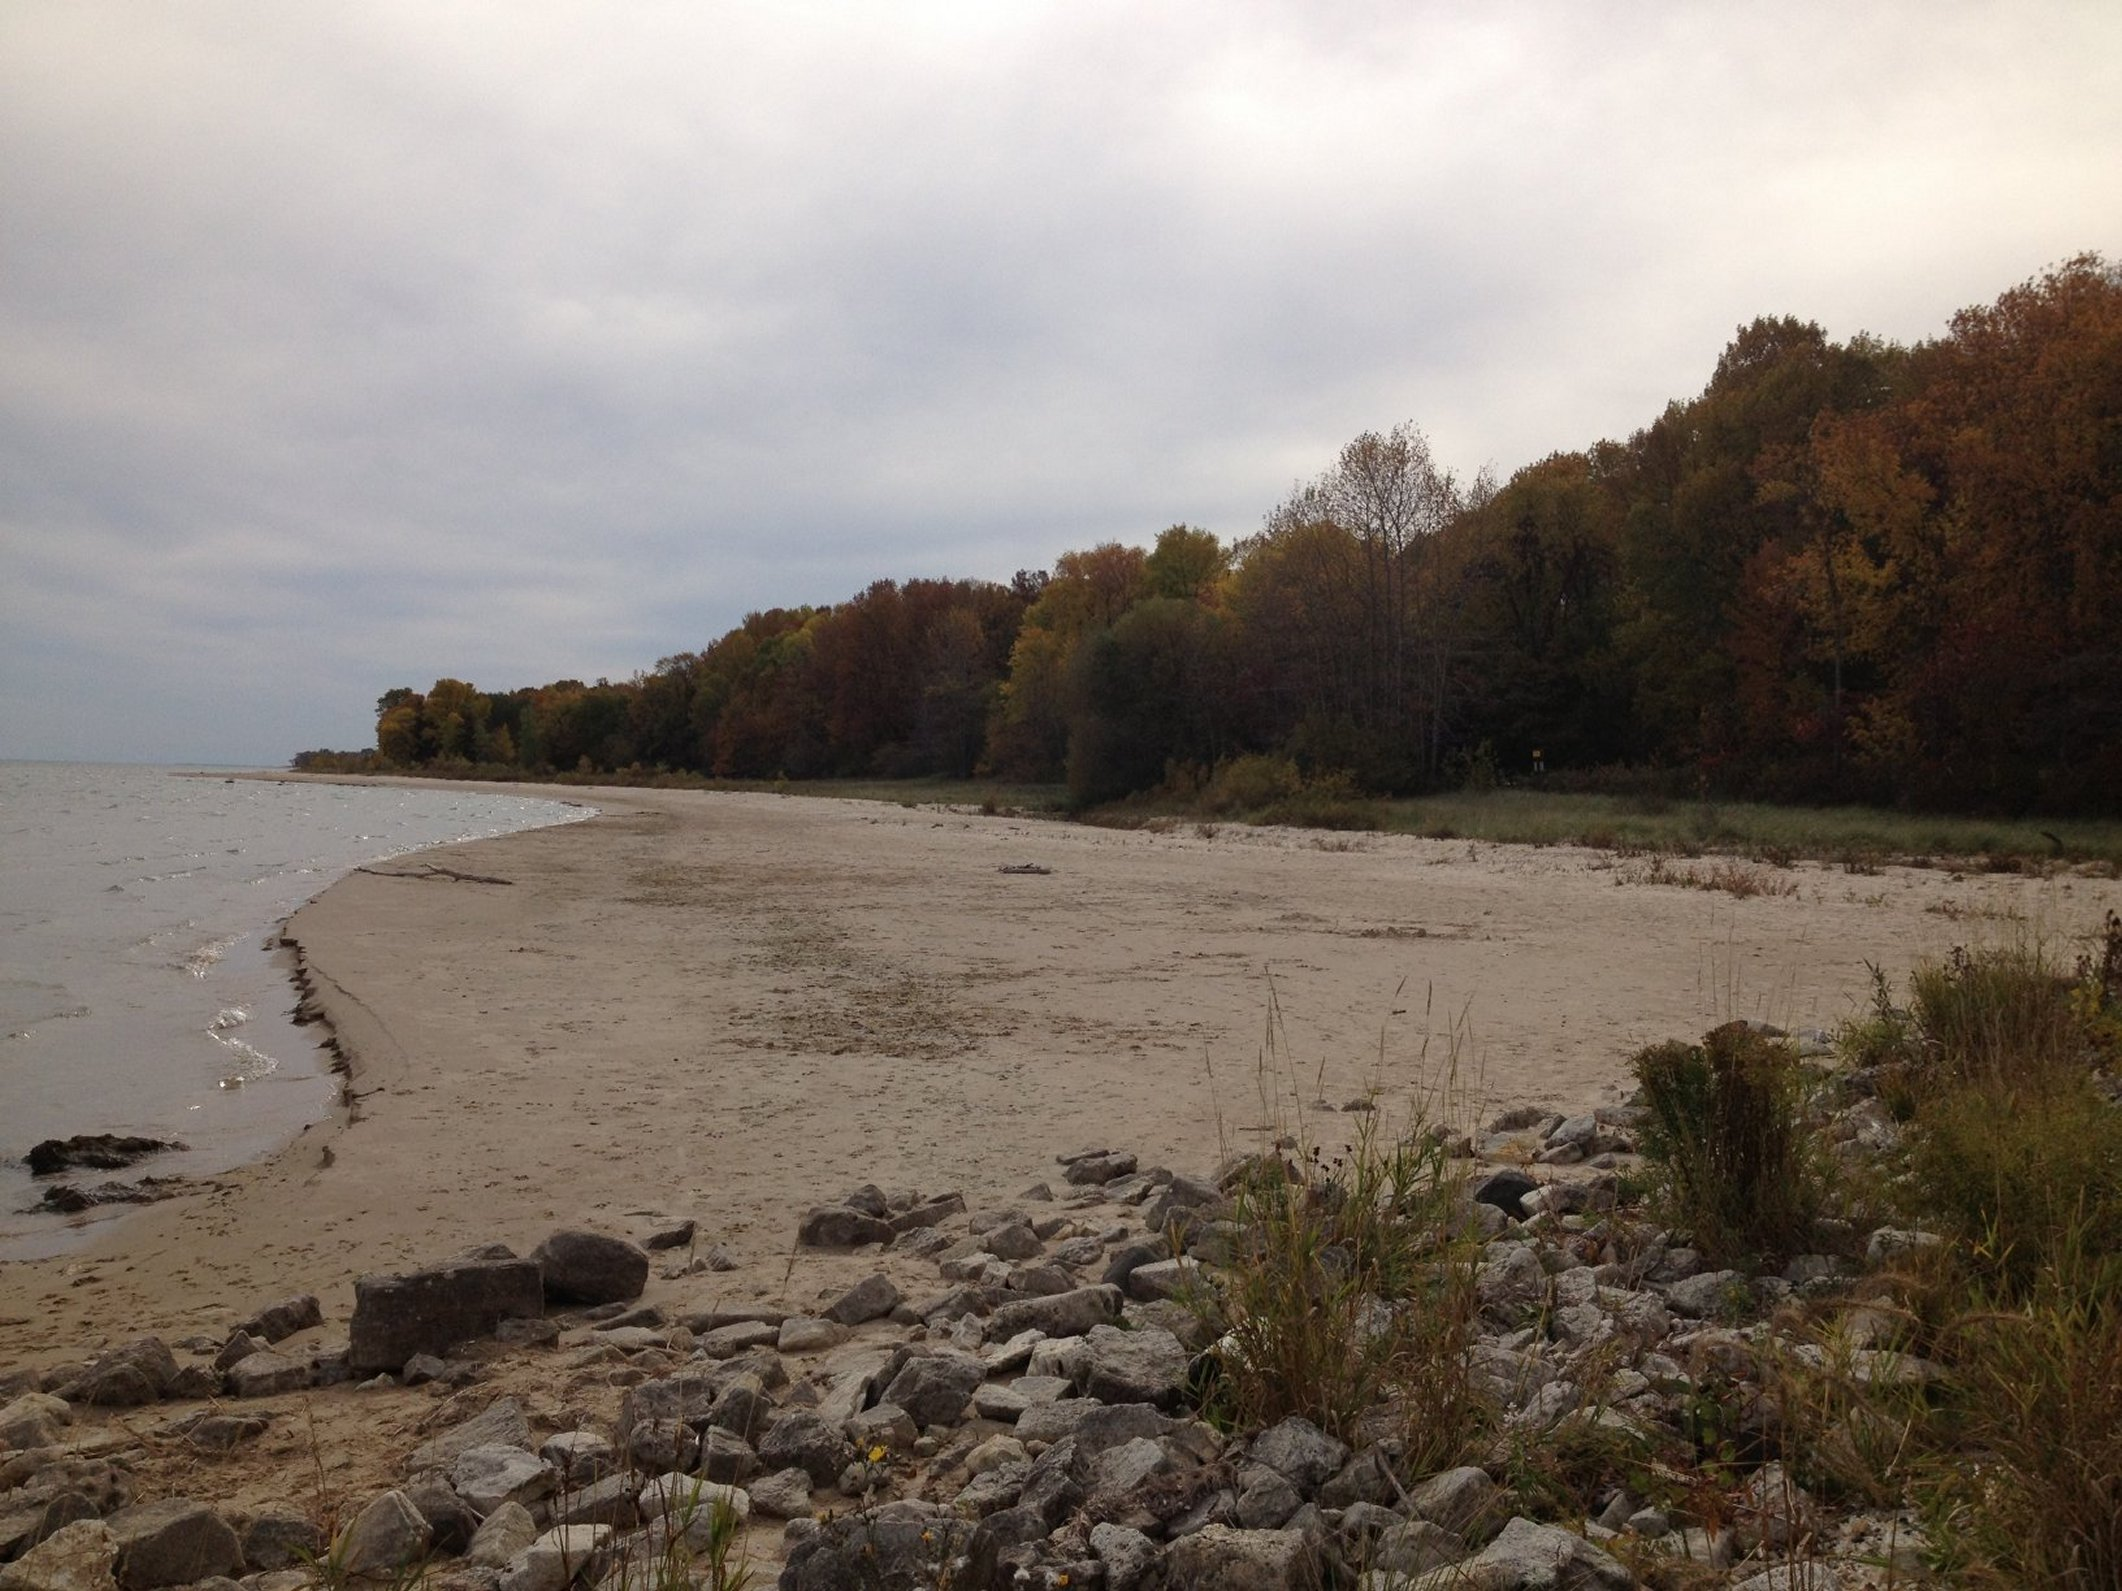 Lake michighan shoreline on a cloudy day photo